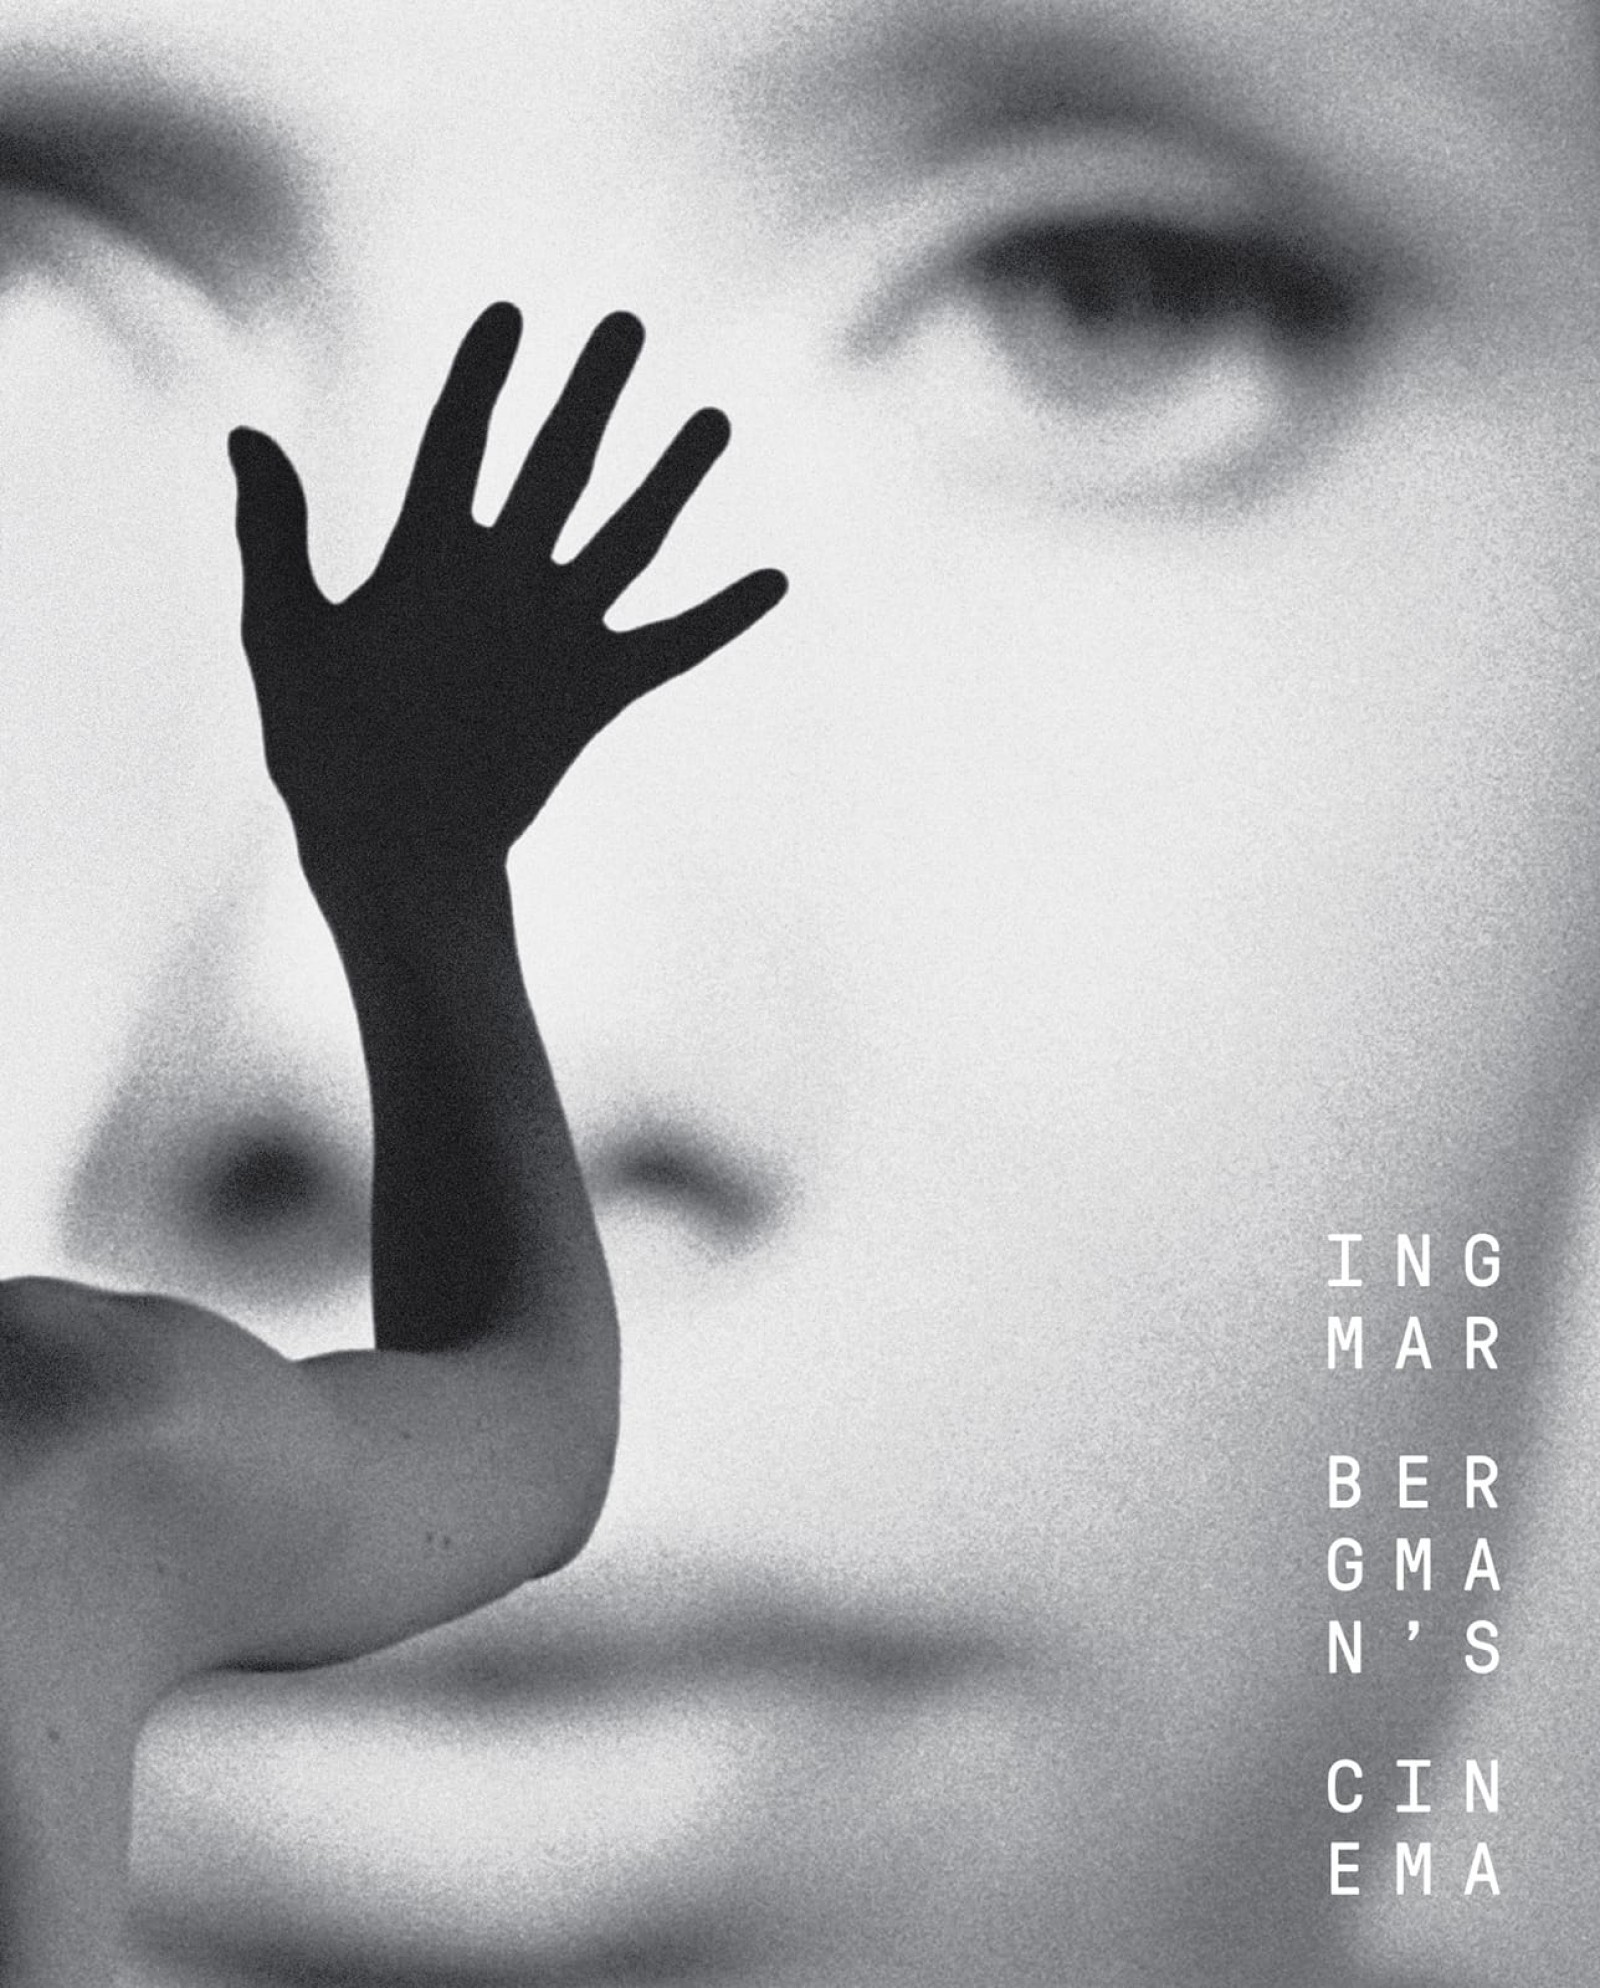 Ingmar Bergman's Cinema (Collector's Edition Box Set)(The Criterion Collection)(Blu-ray)(Region A)